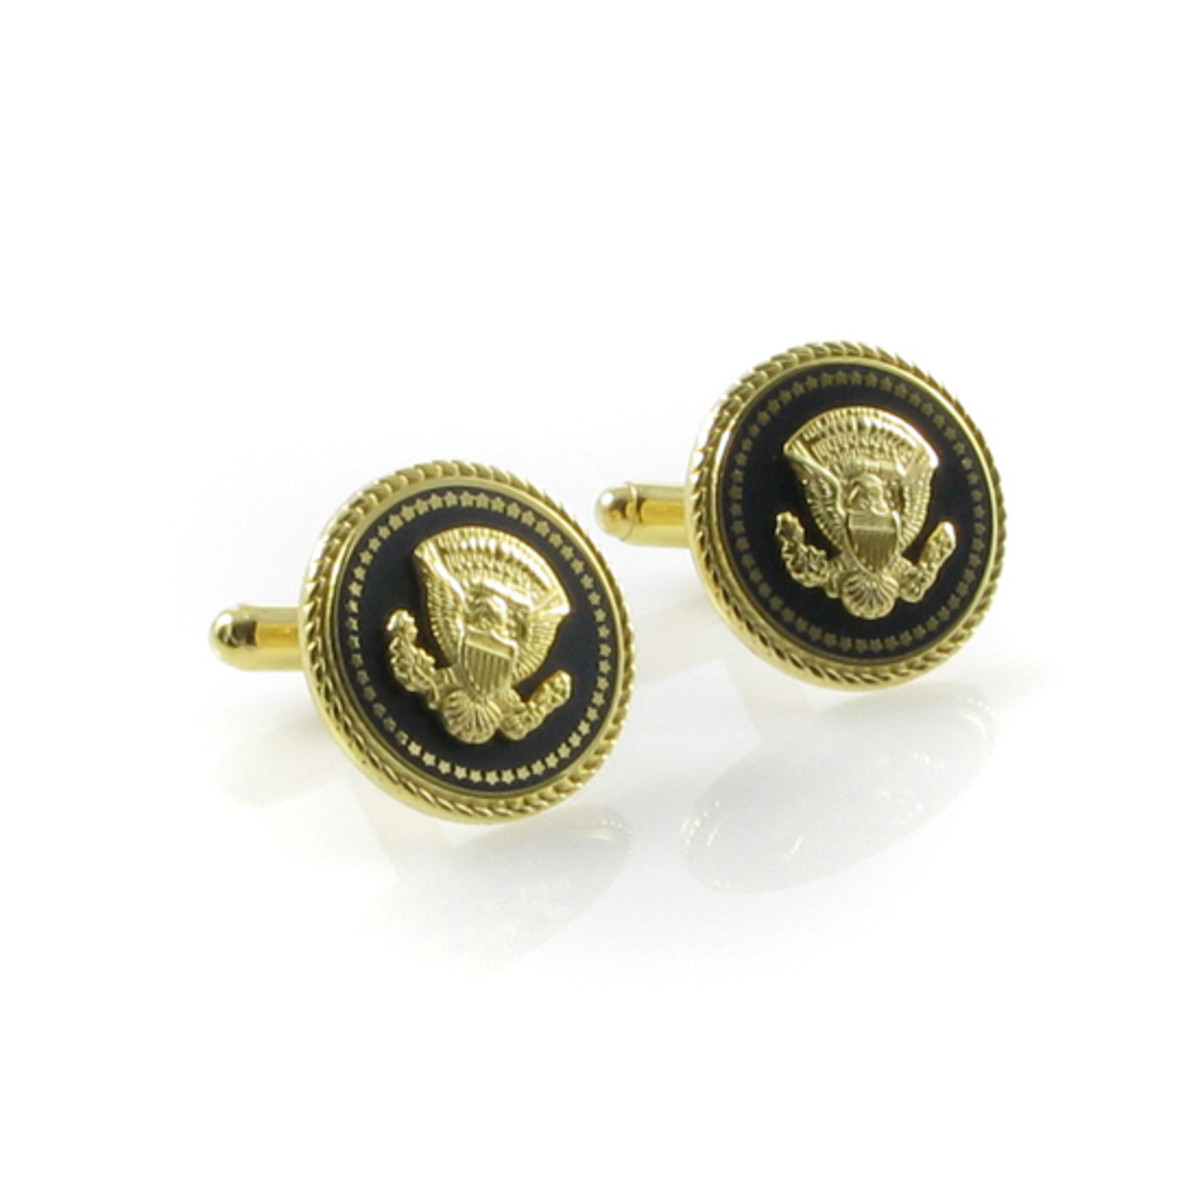 Navy blue and gold tone - John F. Kennedy Replica Cuff Links by Camrose and Kross